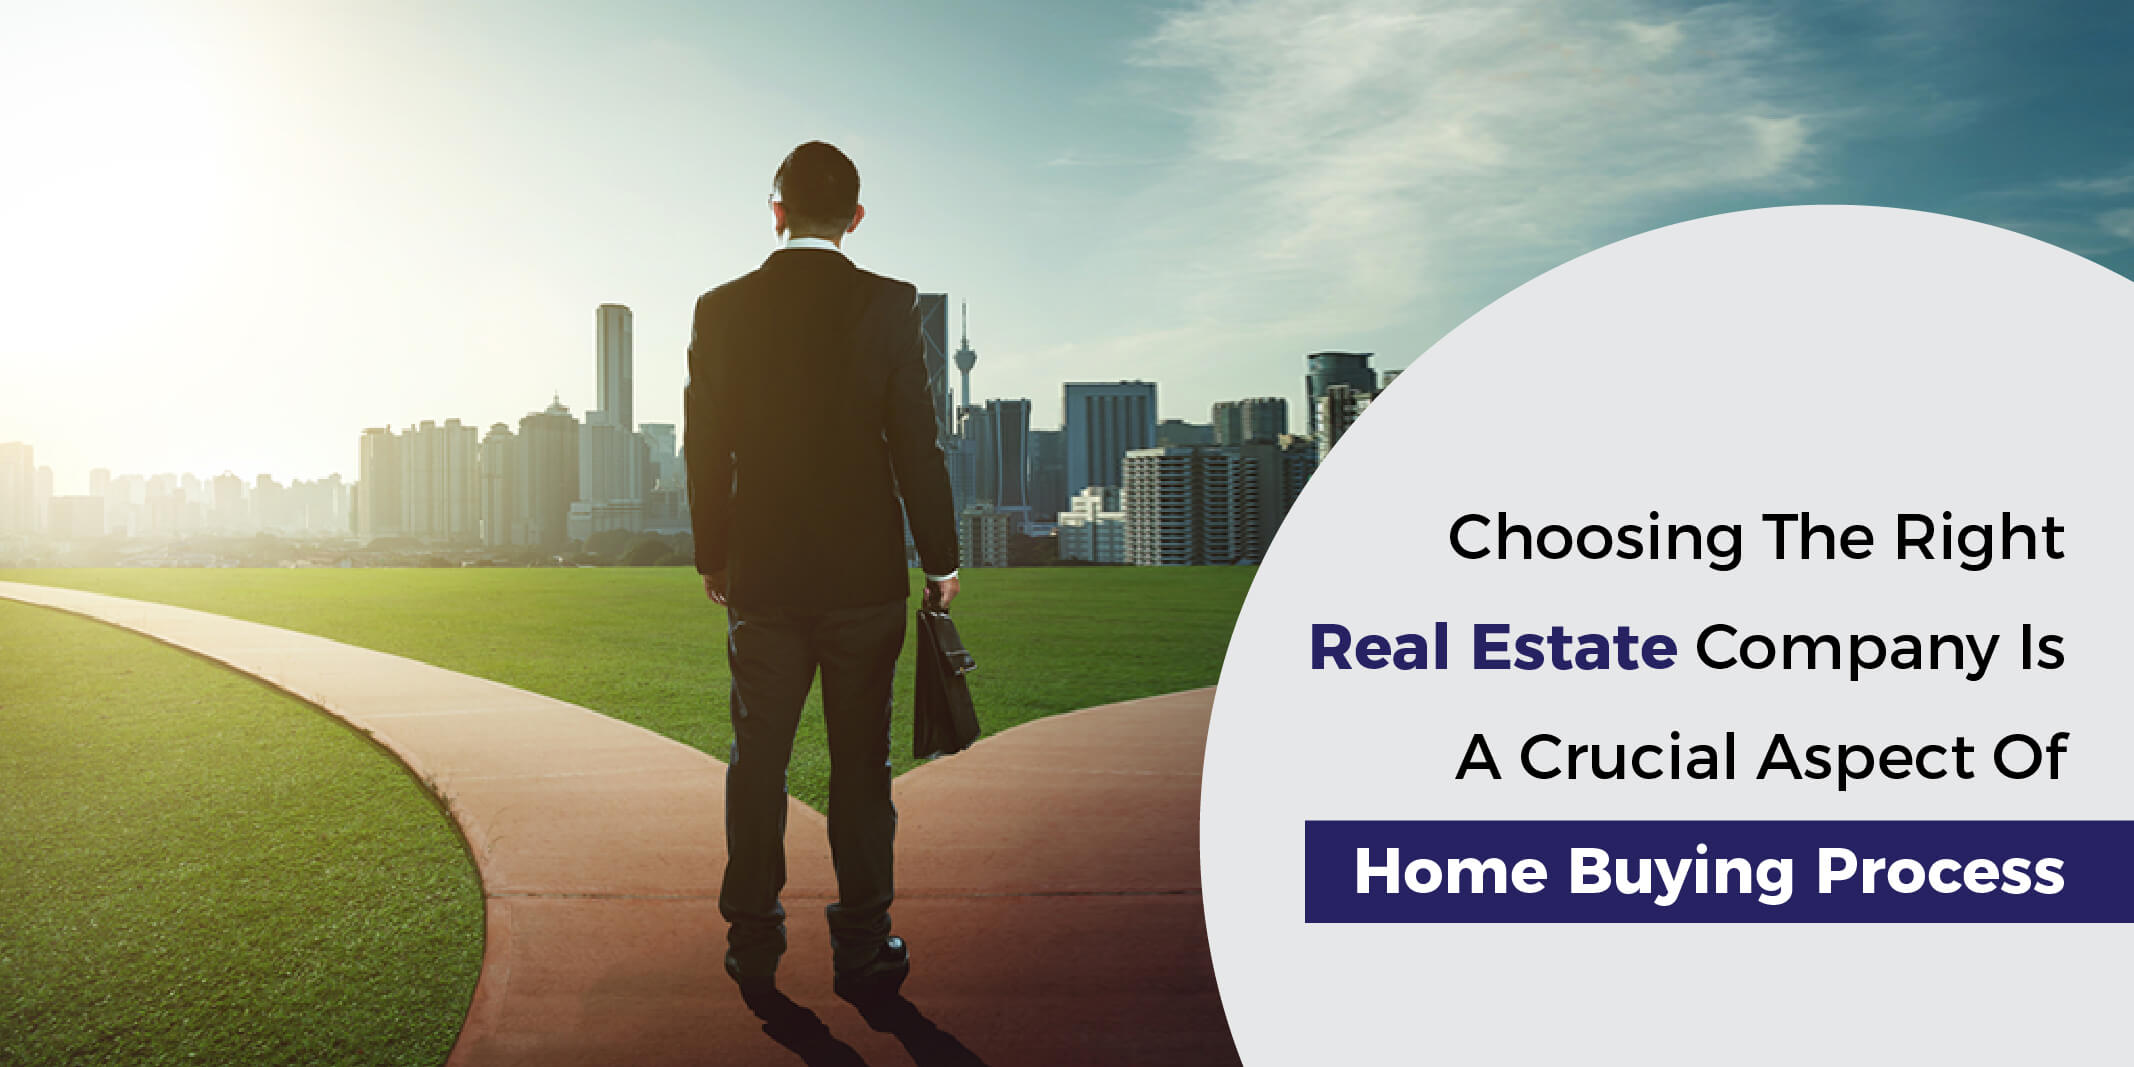 Choosing the right real estate company is a crucial aspect of home buying process